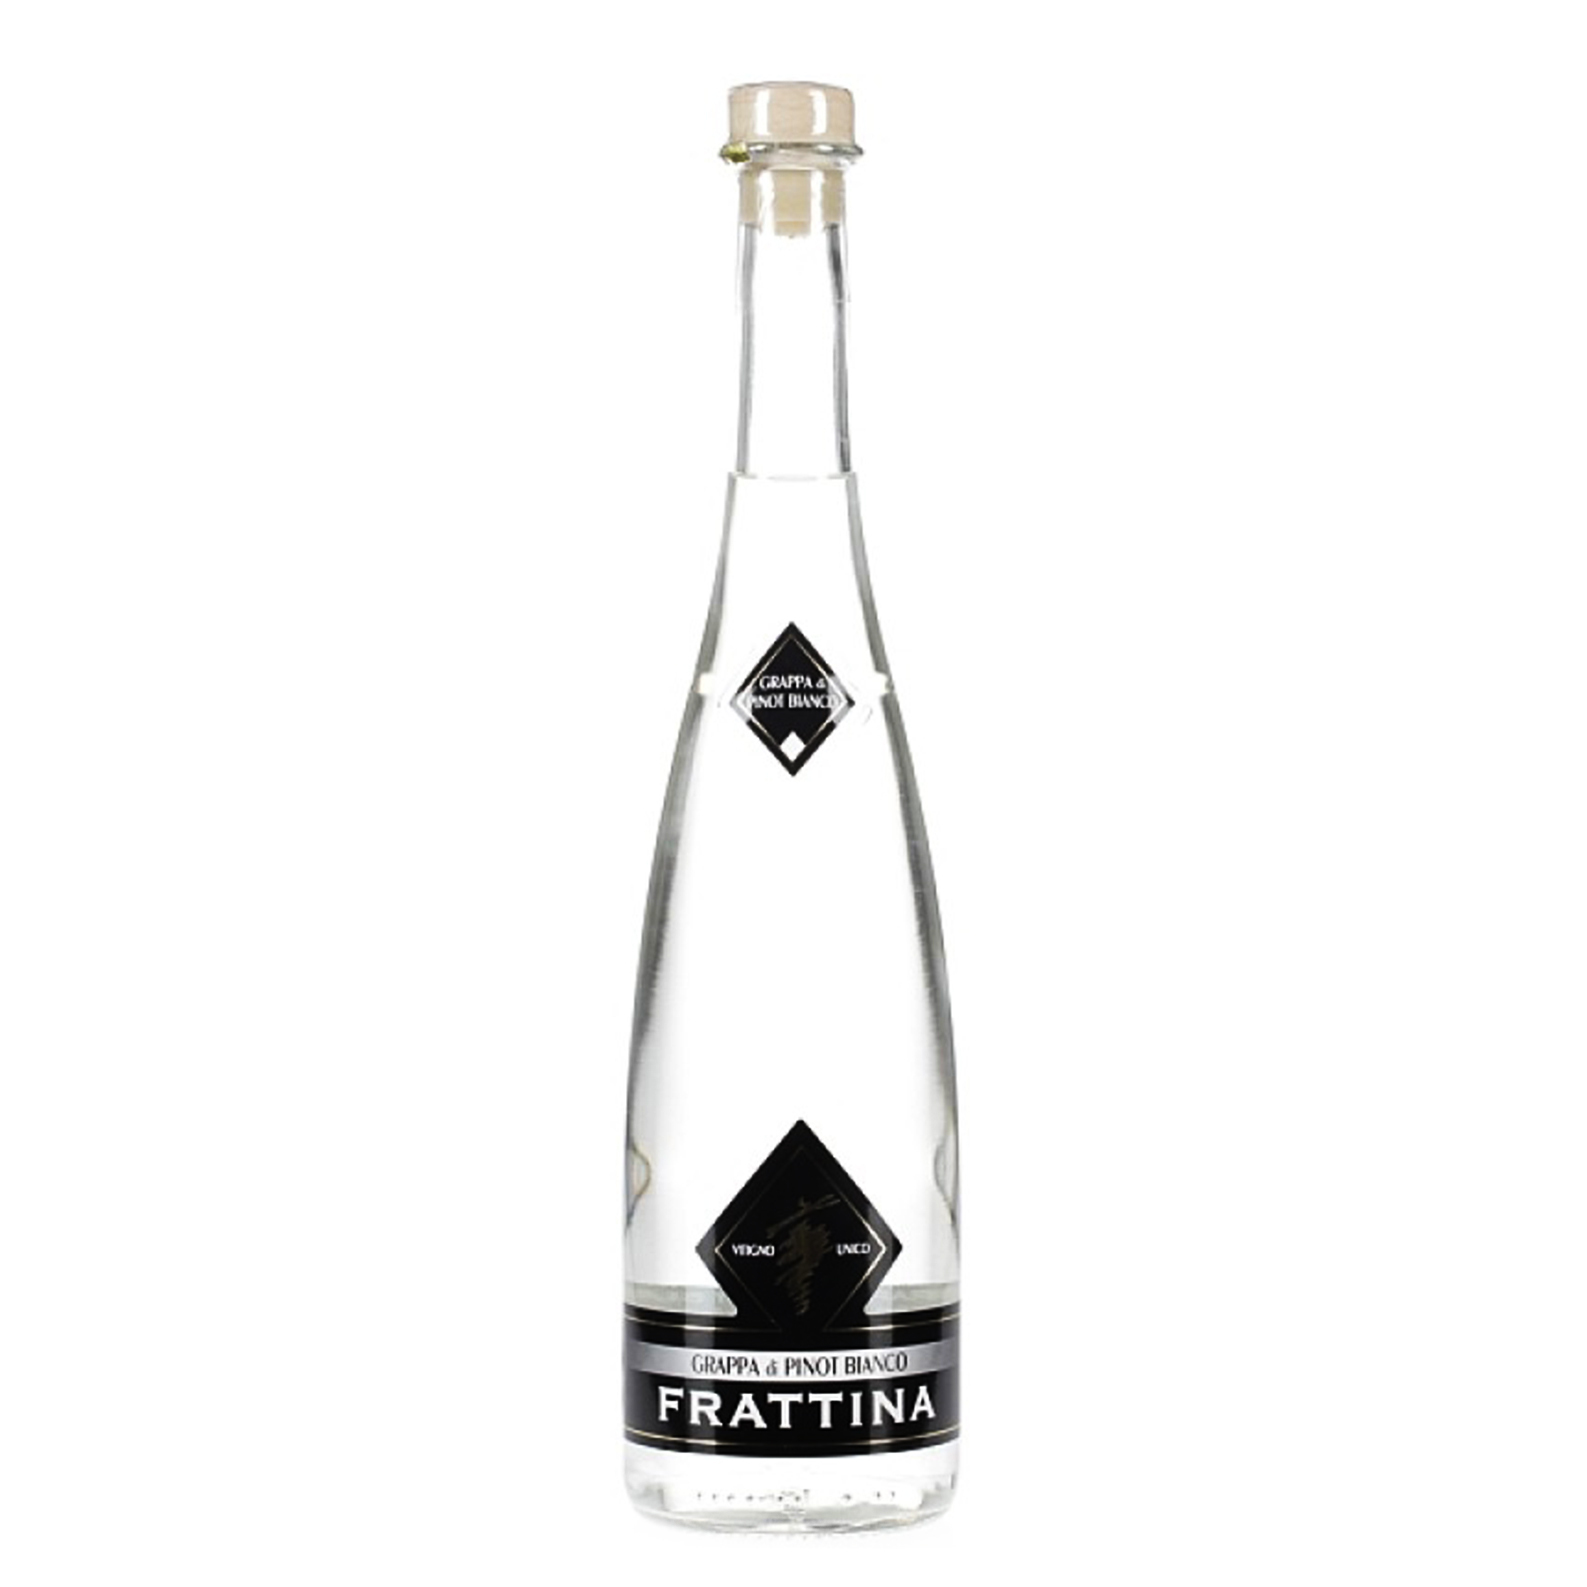 Grappa di Pinot Bianco - 0.70 - Grappa - Frattina